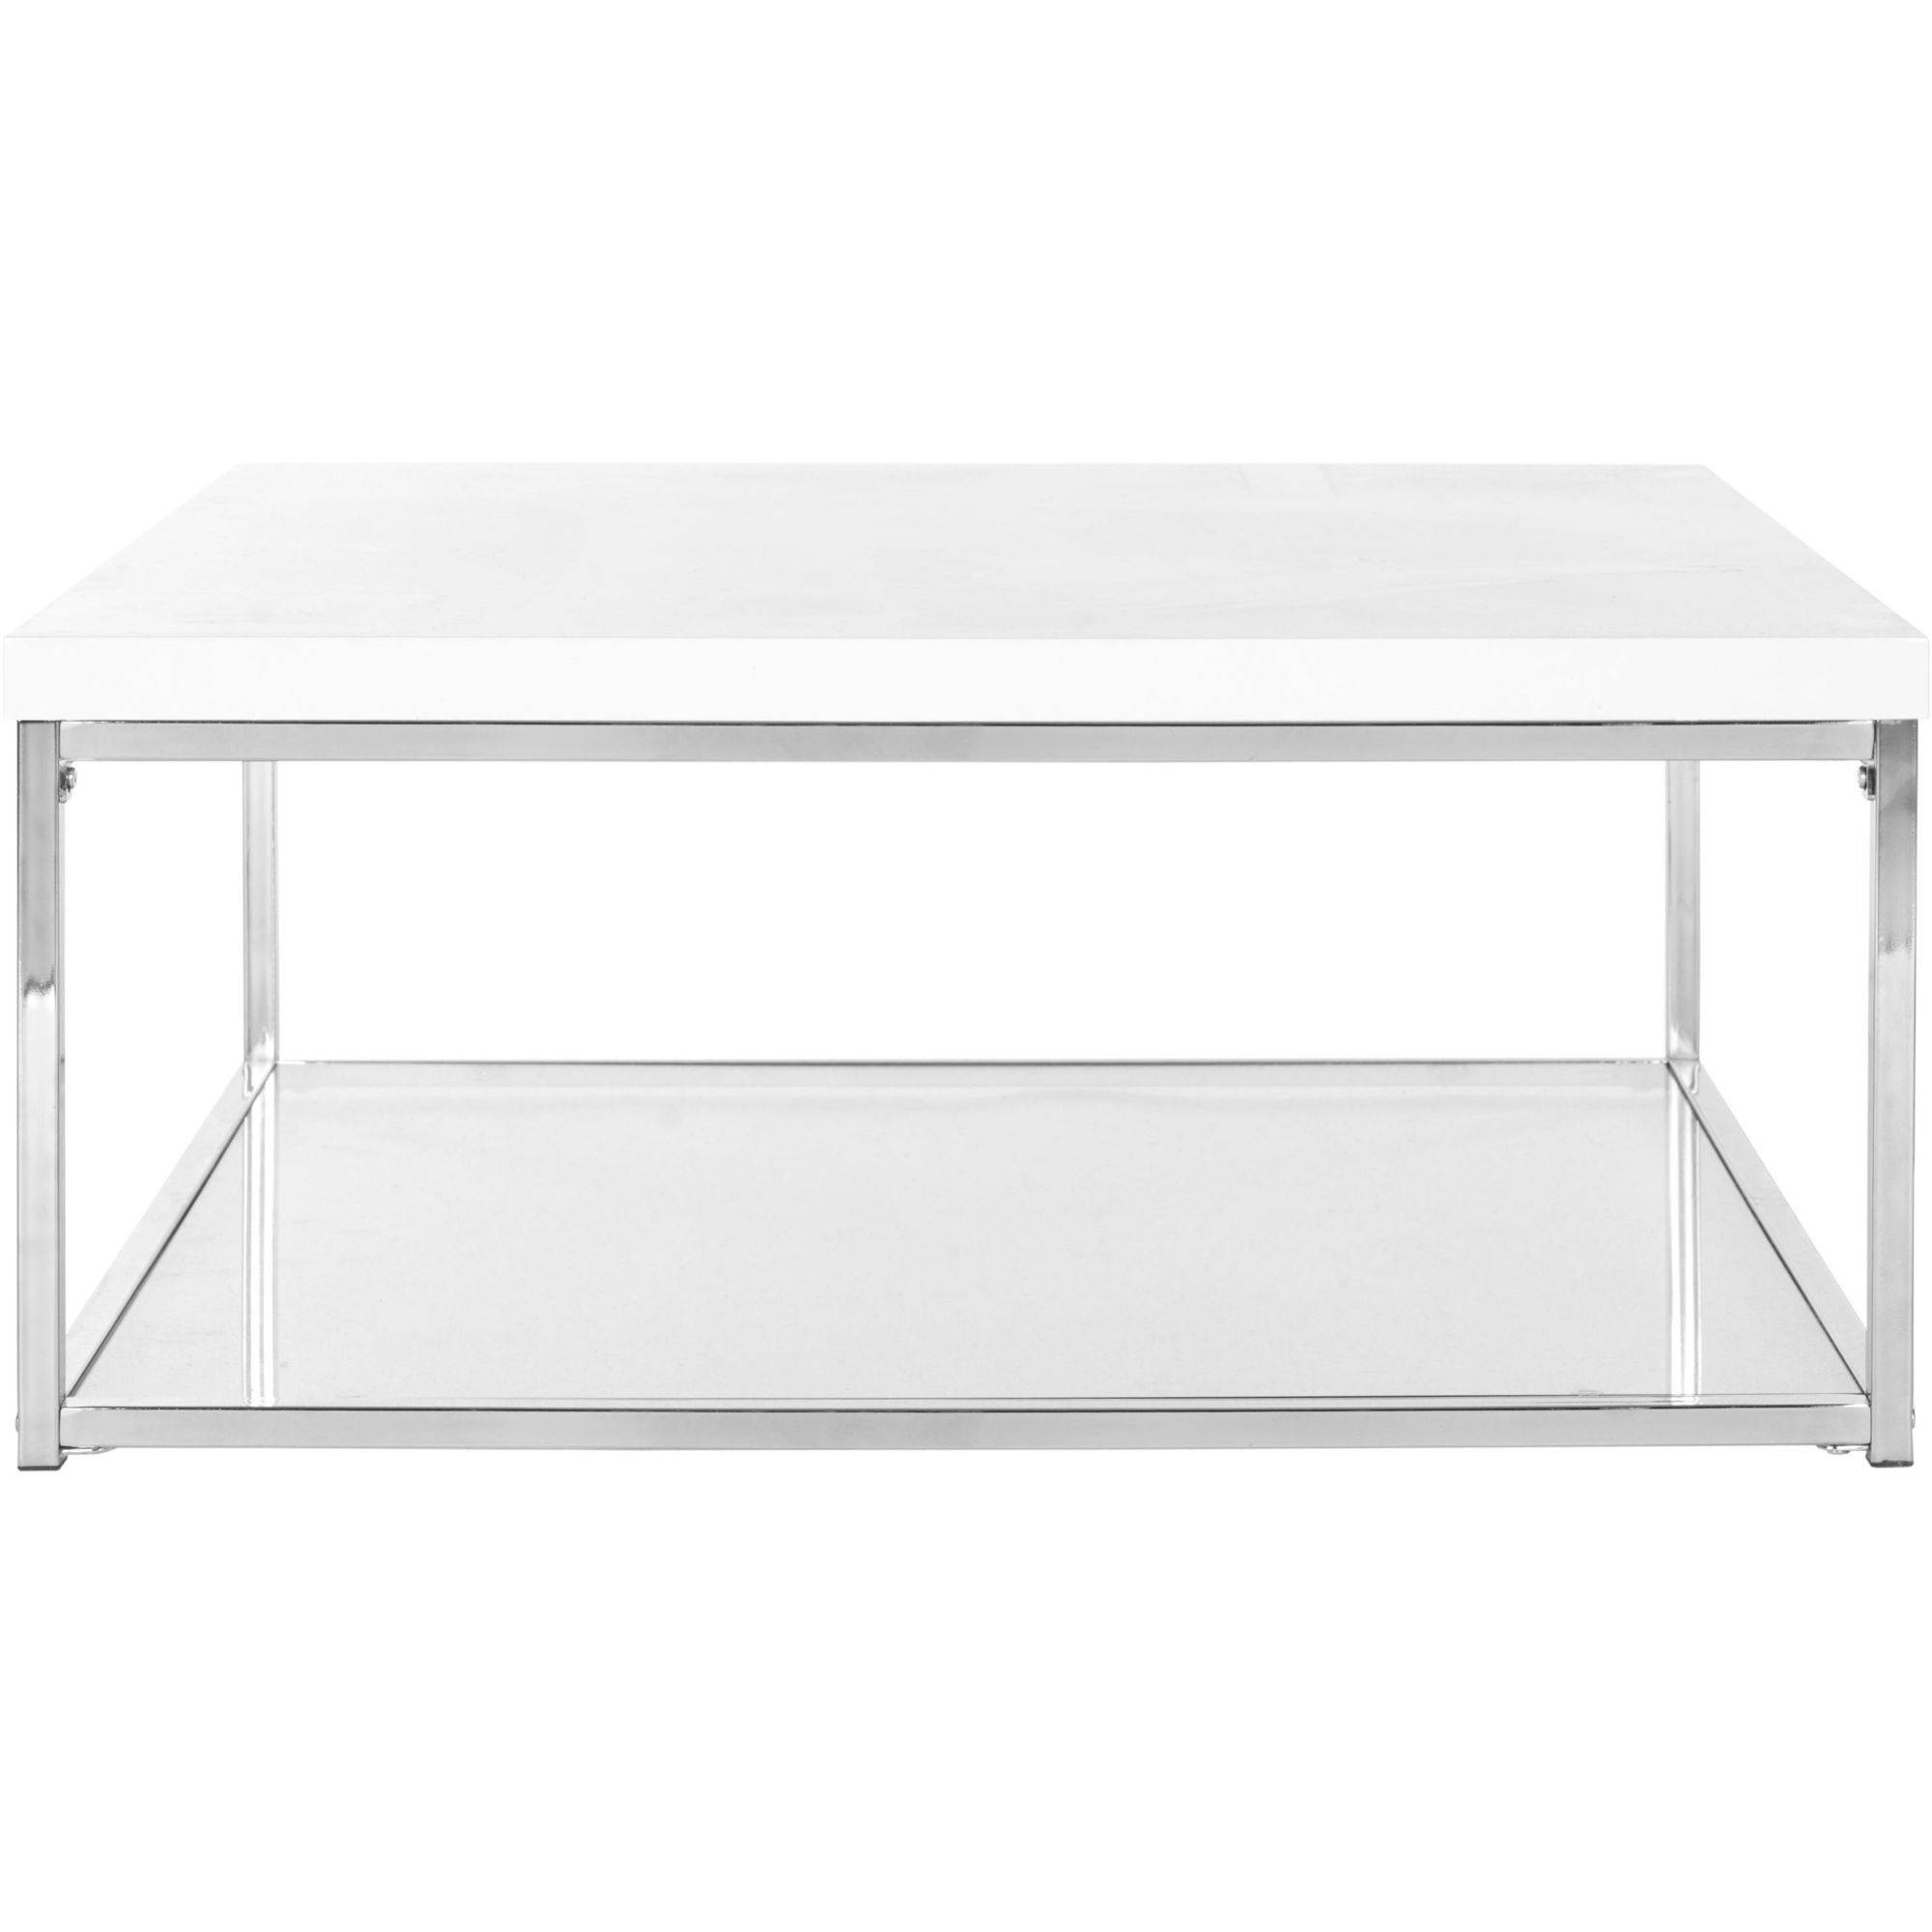 White And Chrome Coffee Table: Safavieh Malone Coffee Table, White And Chrome